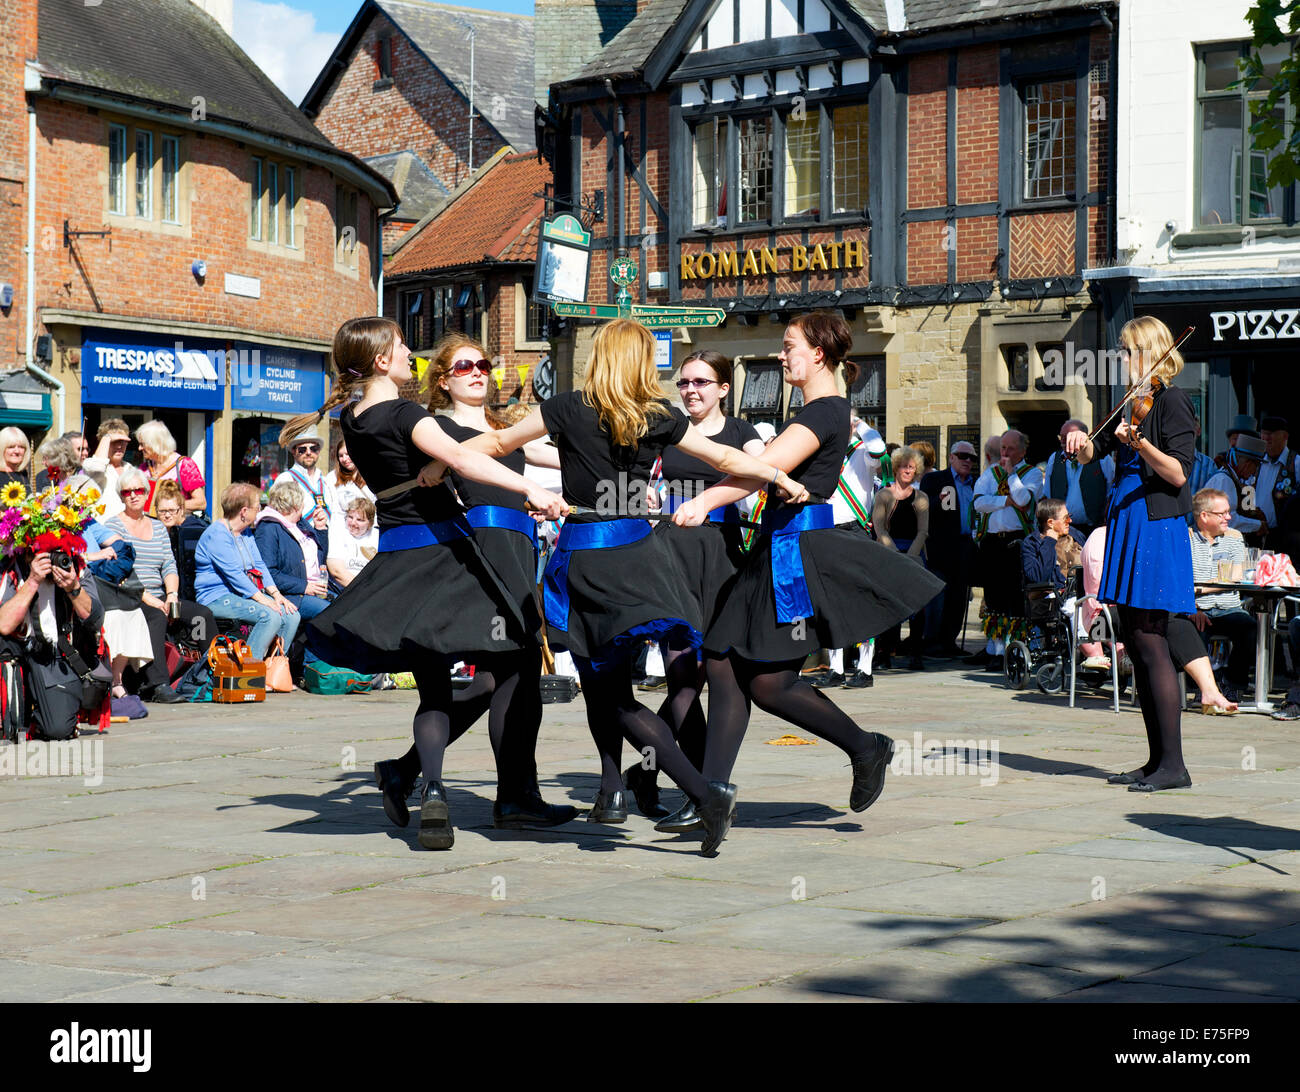 Folk dancers in York, North Yorkshire, England UK - Stock Image